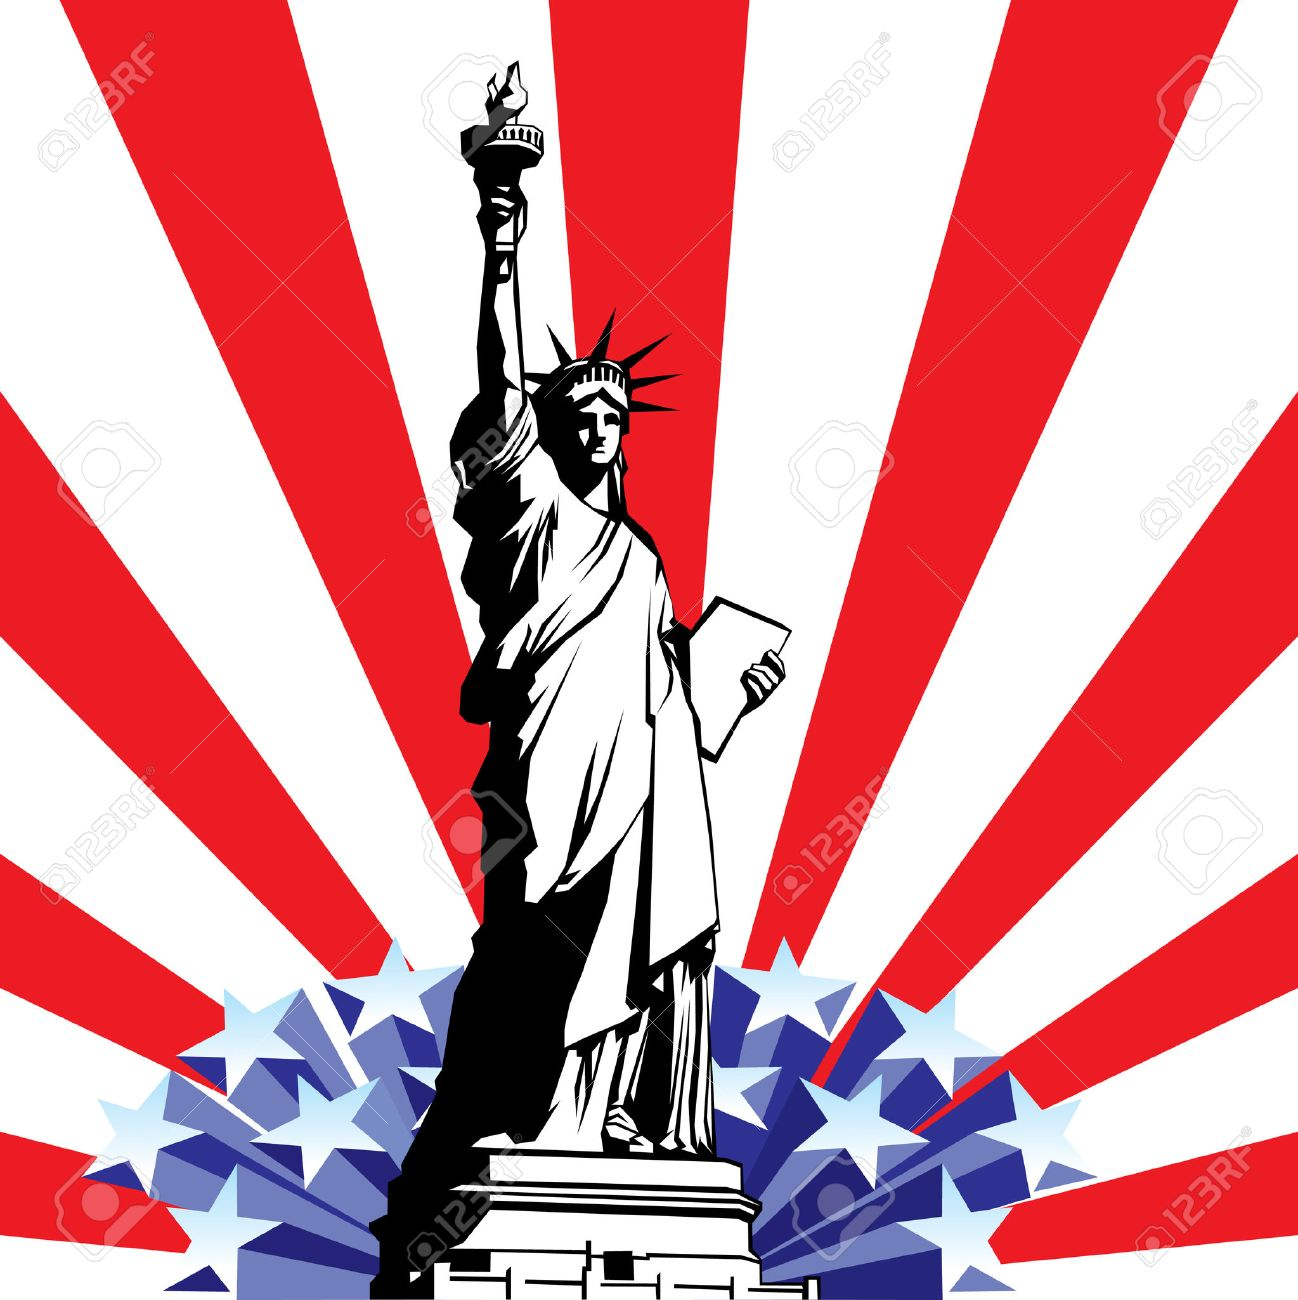 Image Of American Symbols Of Freedom Statue Of Liberty On The